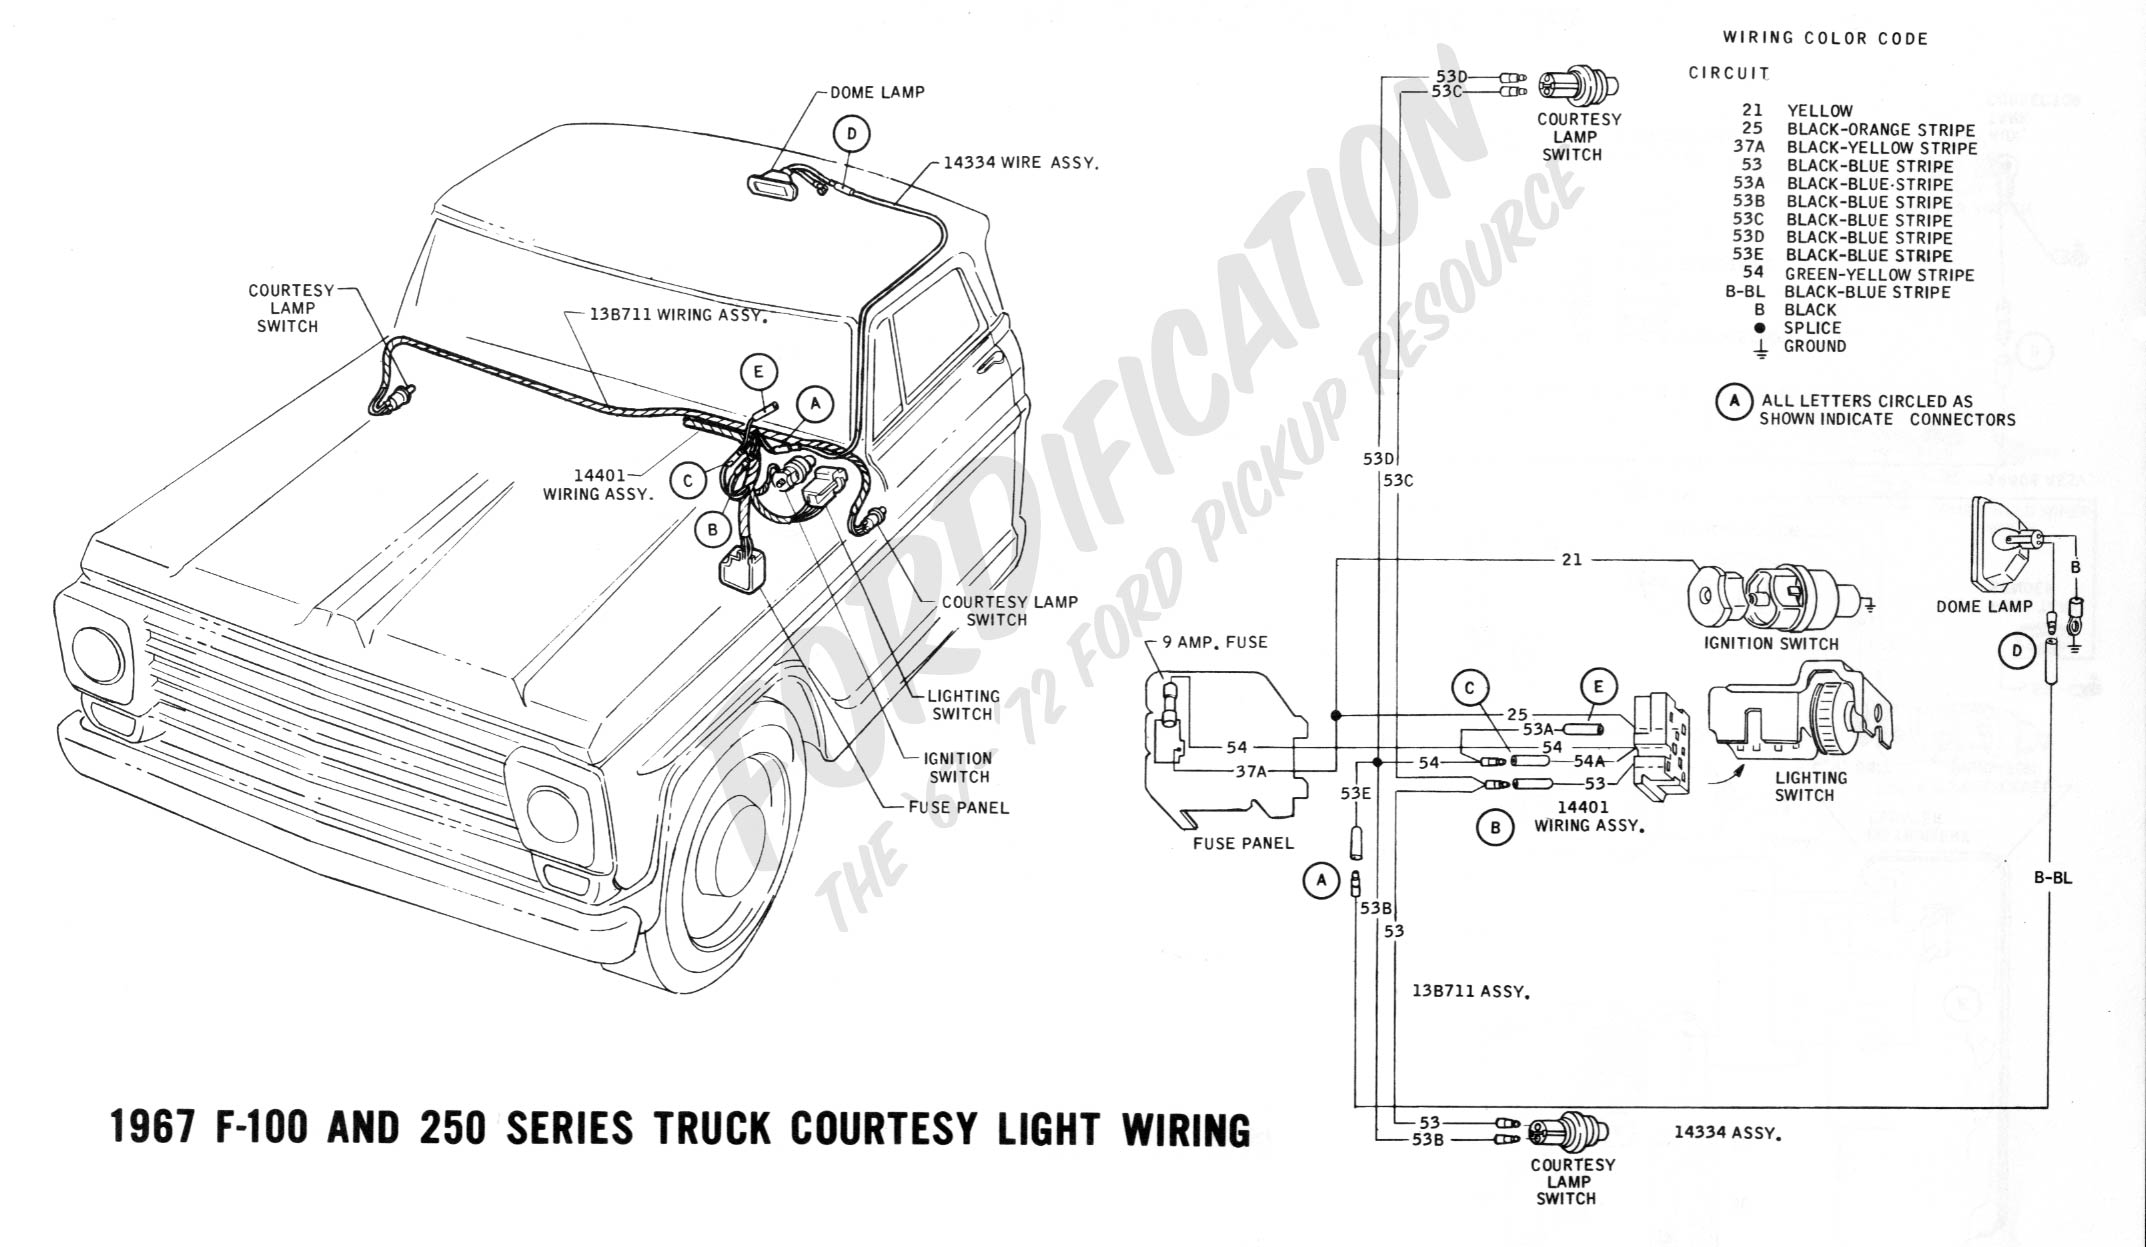 1970 Ford F 250 Wiring Diagram Free Picture Just Another Cucv Fuse Panel 1972 Fseries Quickreference Online Rh 4 17 1 Aquarium Ag Goyatz De Glow Plug 1992